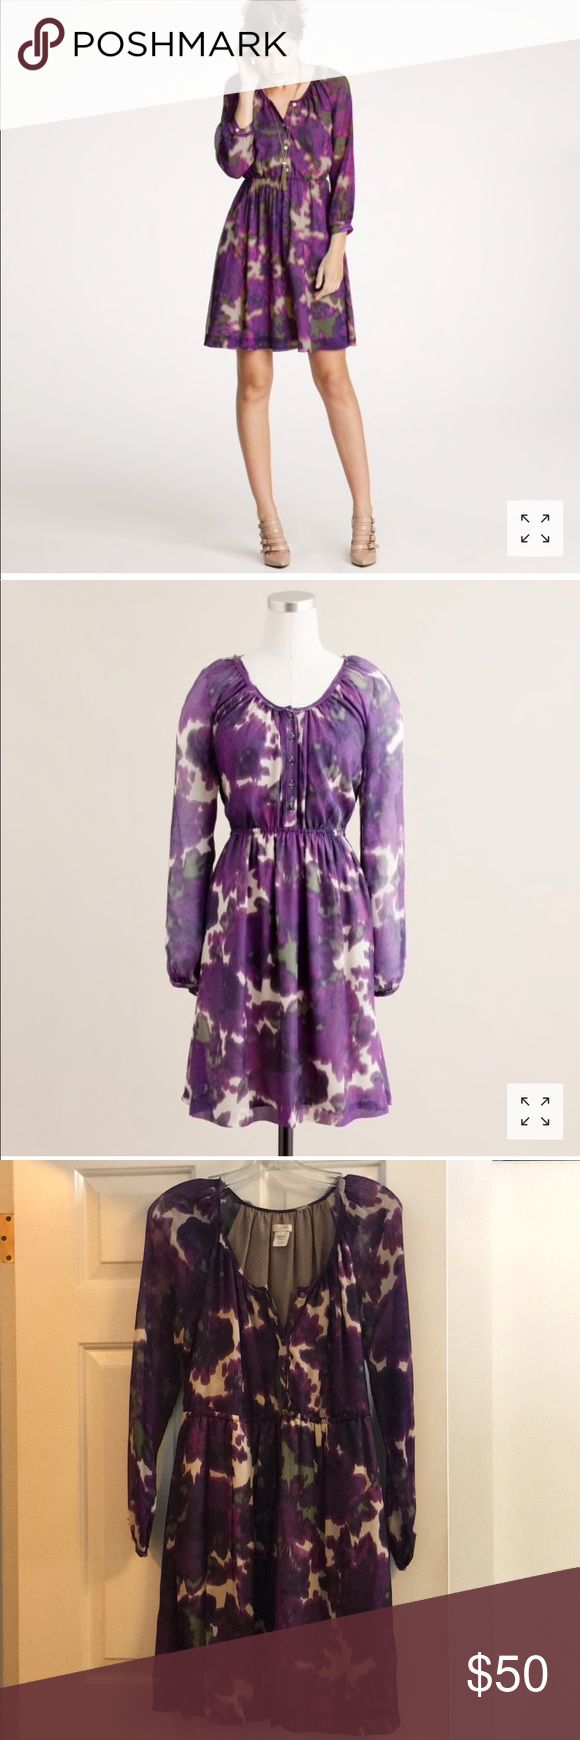 "Jcrew silk Maisie dress in floral size 0 Stunning JCrew silk dress with a purple and green watercolor floral print.  A-line shape is extremely flattering.  New condition except for pictured broken button on sleeve which does not effect wear (sleeve still stays buttoned) Measurements: Waist: 16"" Length from shoulder to hem: about 36"" Bust: 15"" J. Crew Dresses Midi"